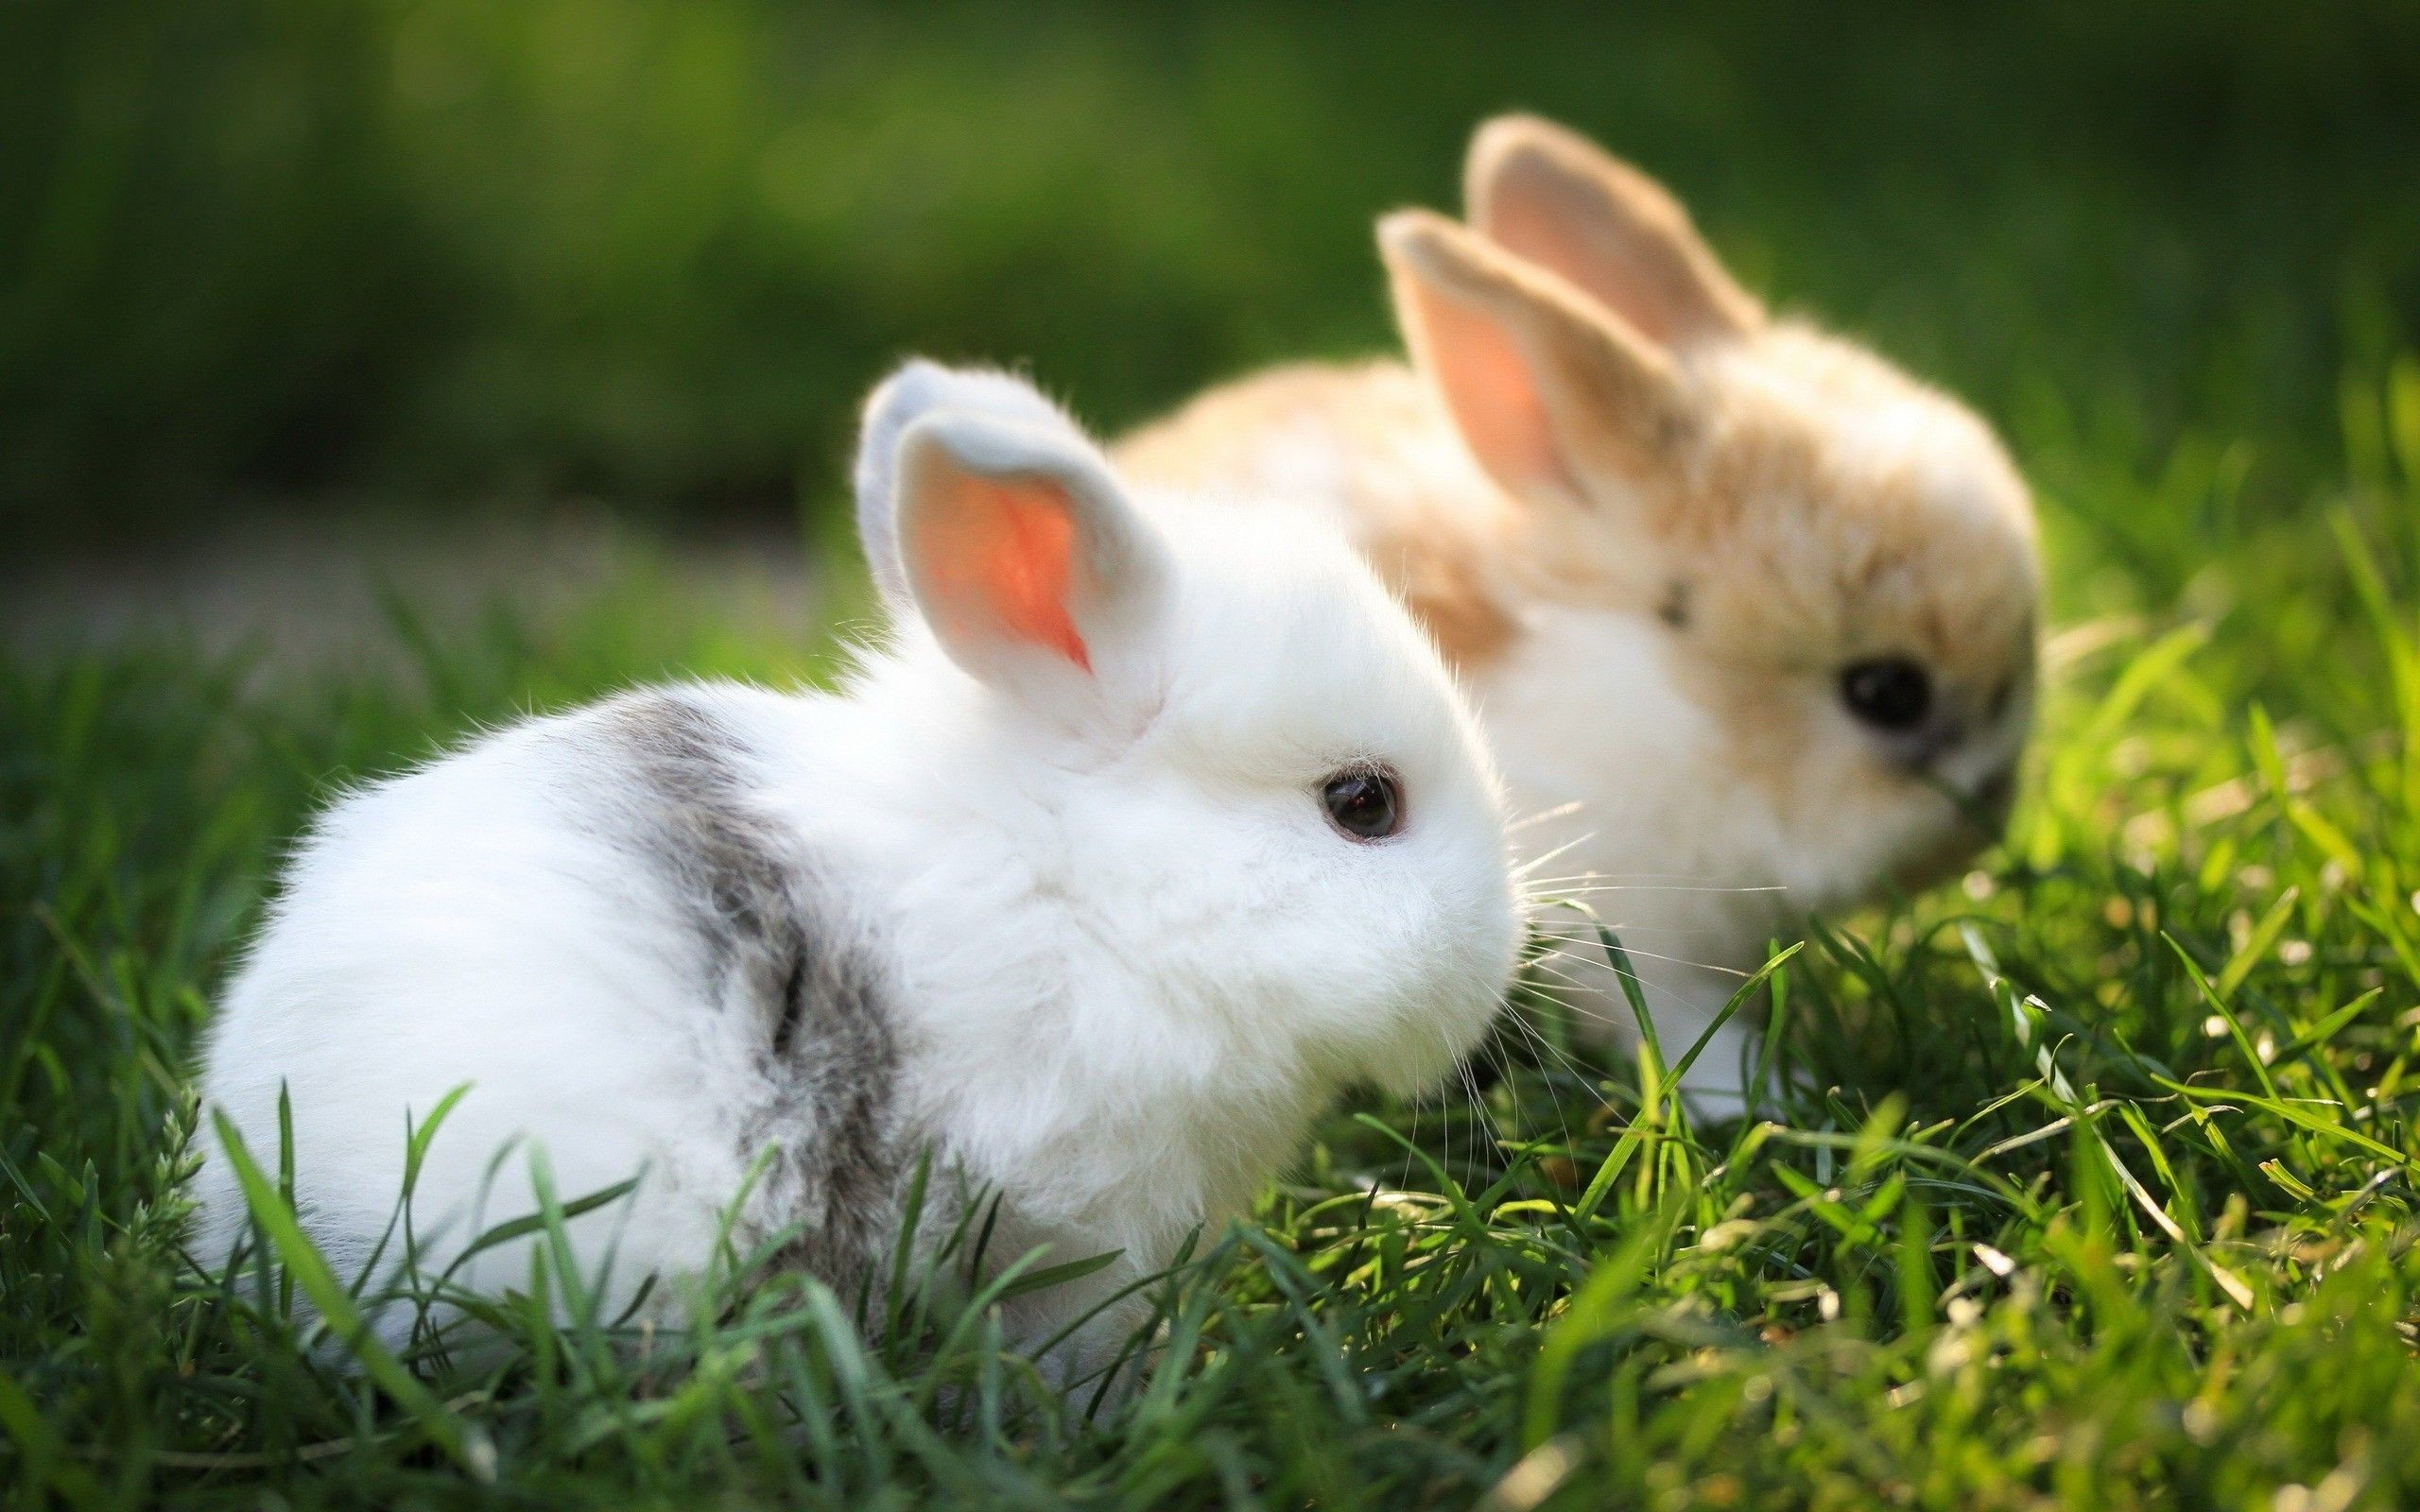 Res: 2560x1600, Baby Bunny Wallpapers - Wallpaper Cave